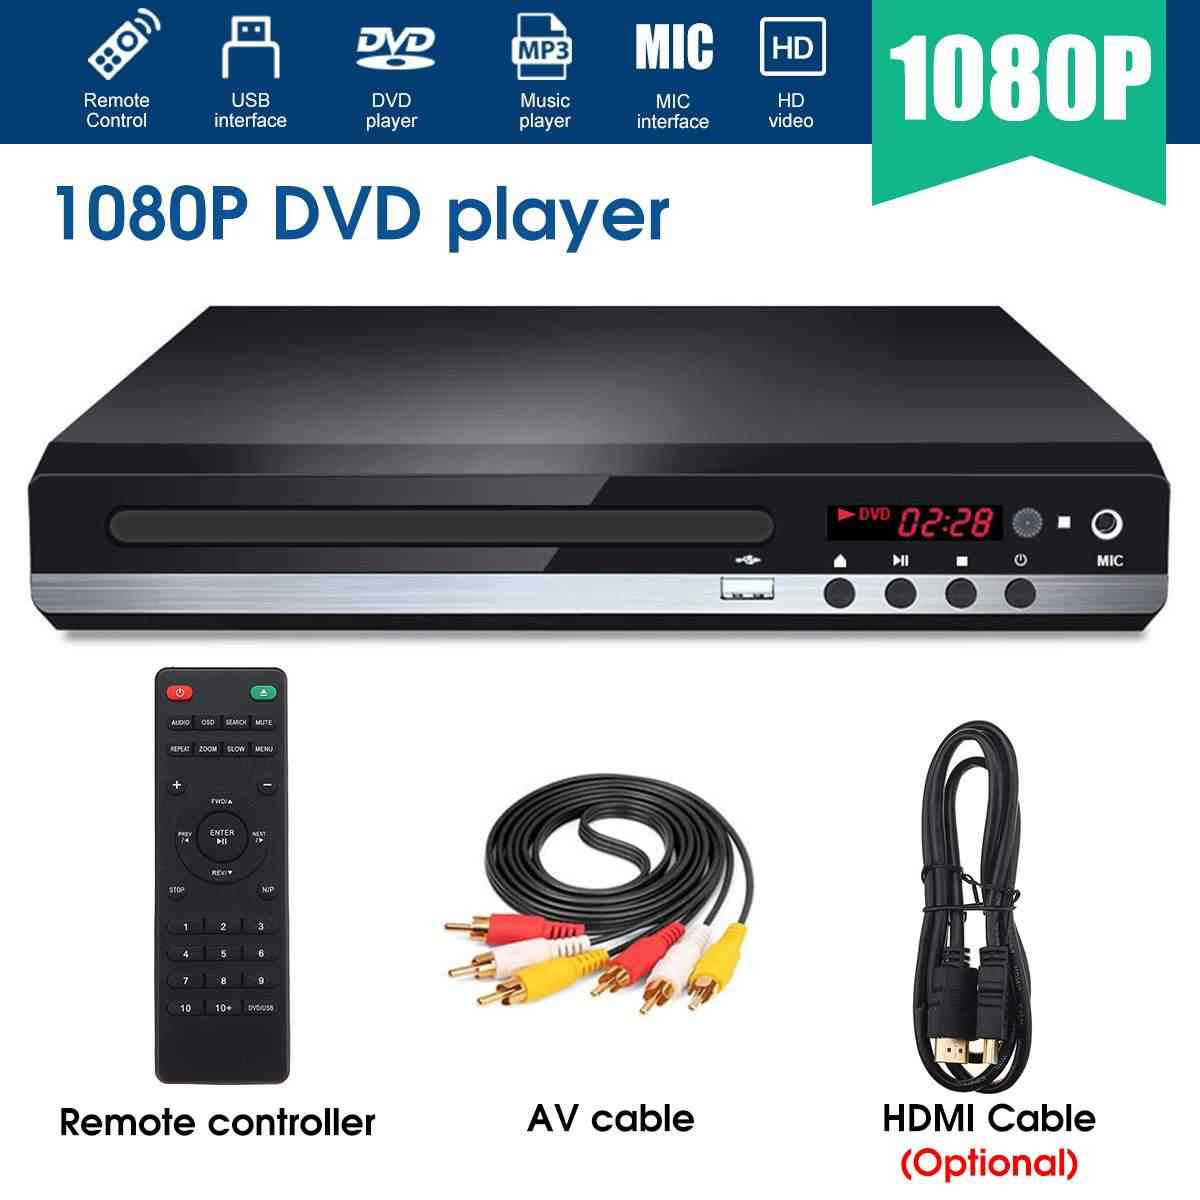 Multi Systeem 1080P Full Hd Dvd Speler Usb Dvd-speler Multimedia Digitale Dvd Tv Disc Player Ondersteuning Hdmi Cd rw Svcd Vcd MP3